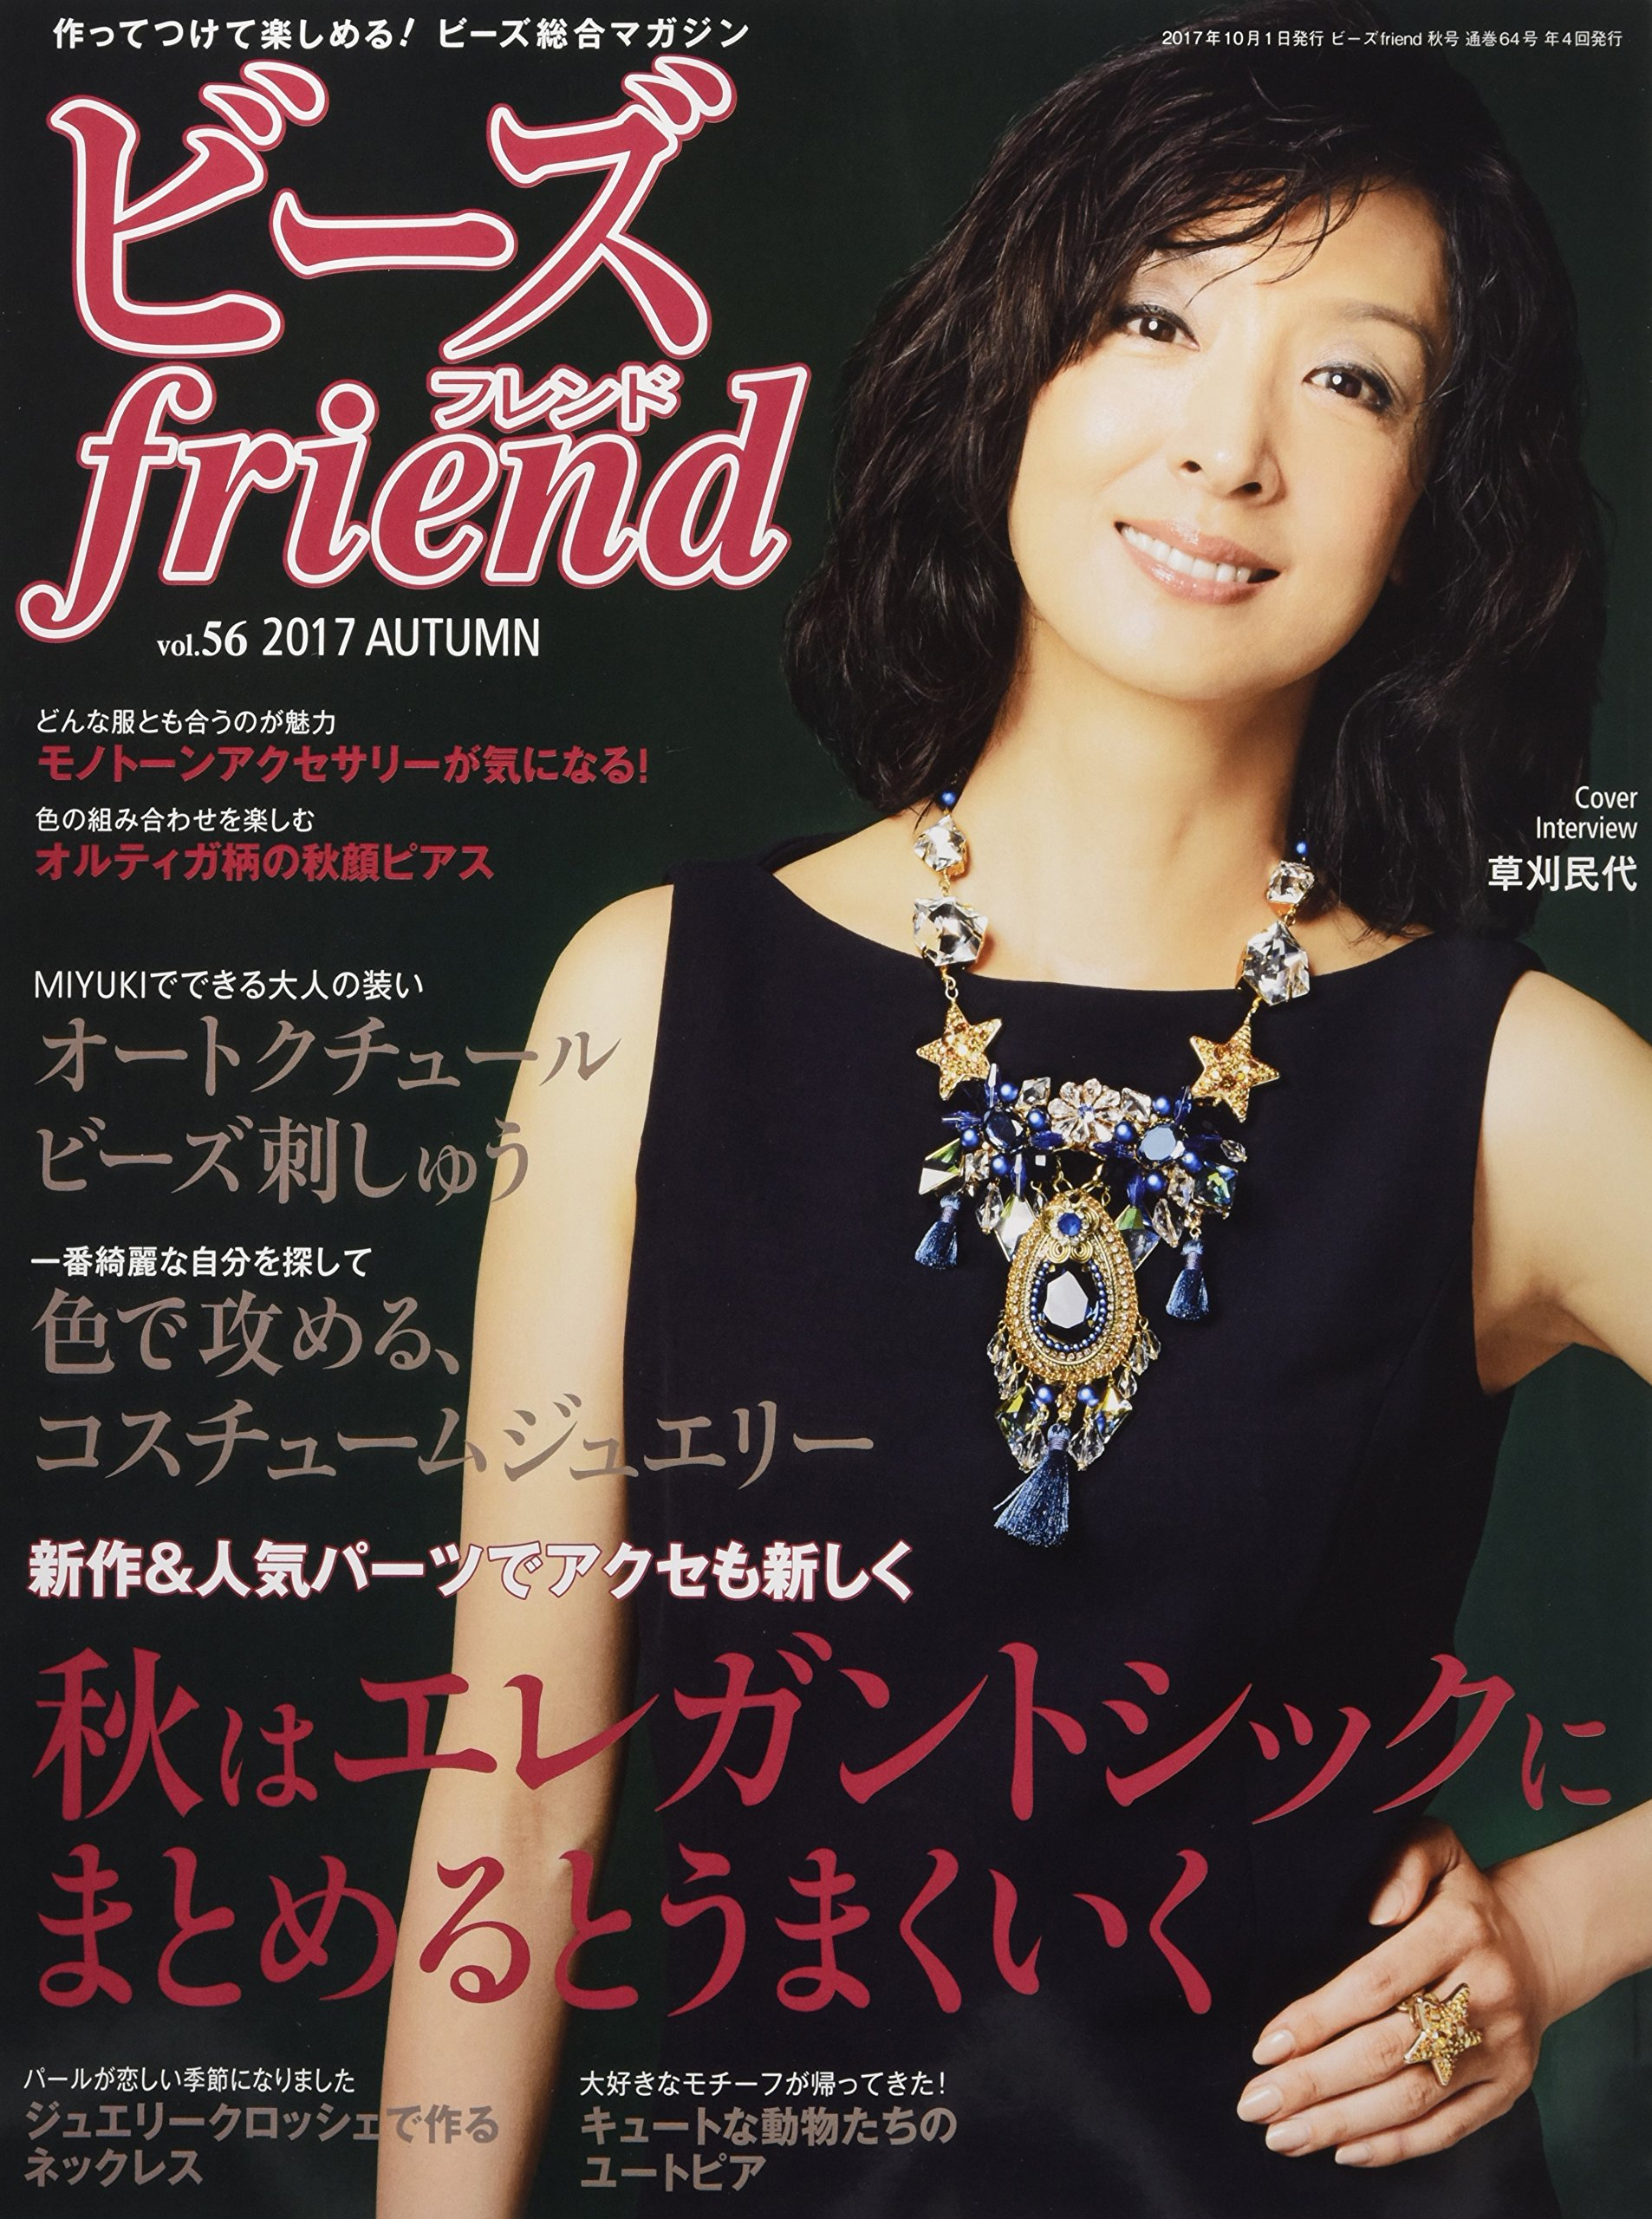 Beads friend 2017 autumn vol.56